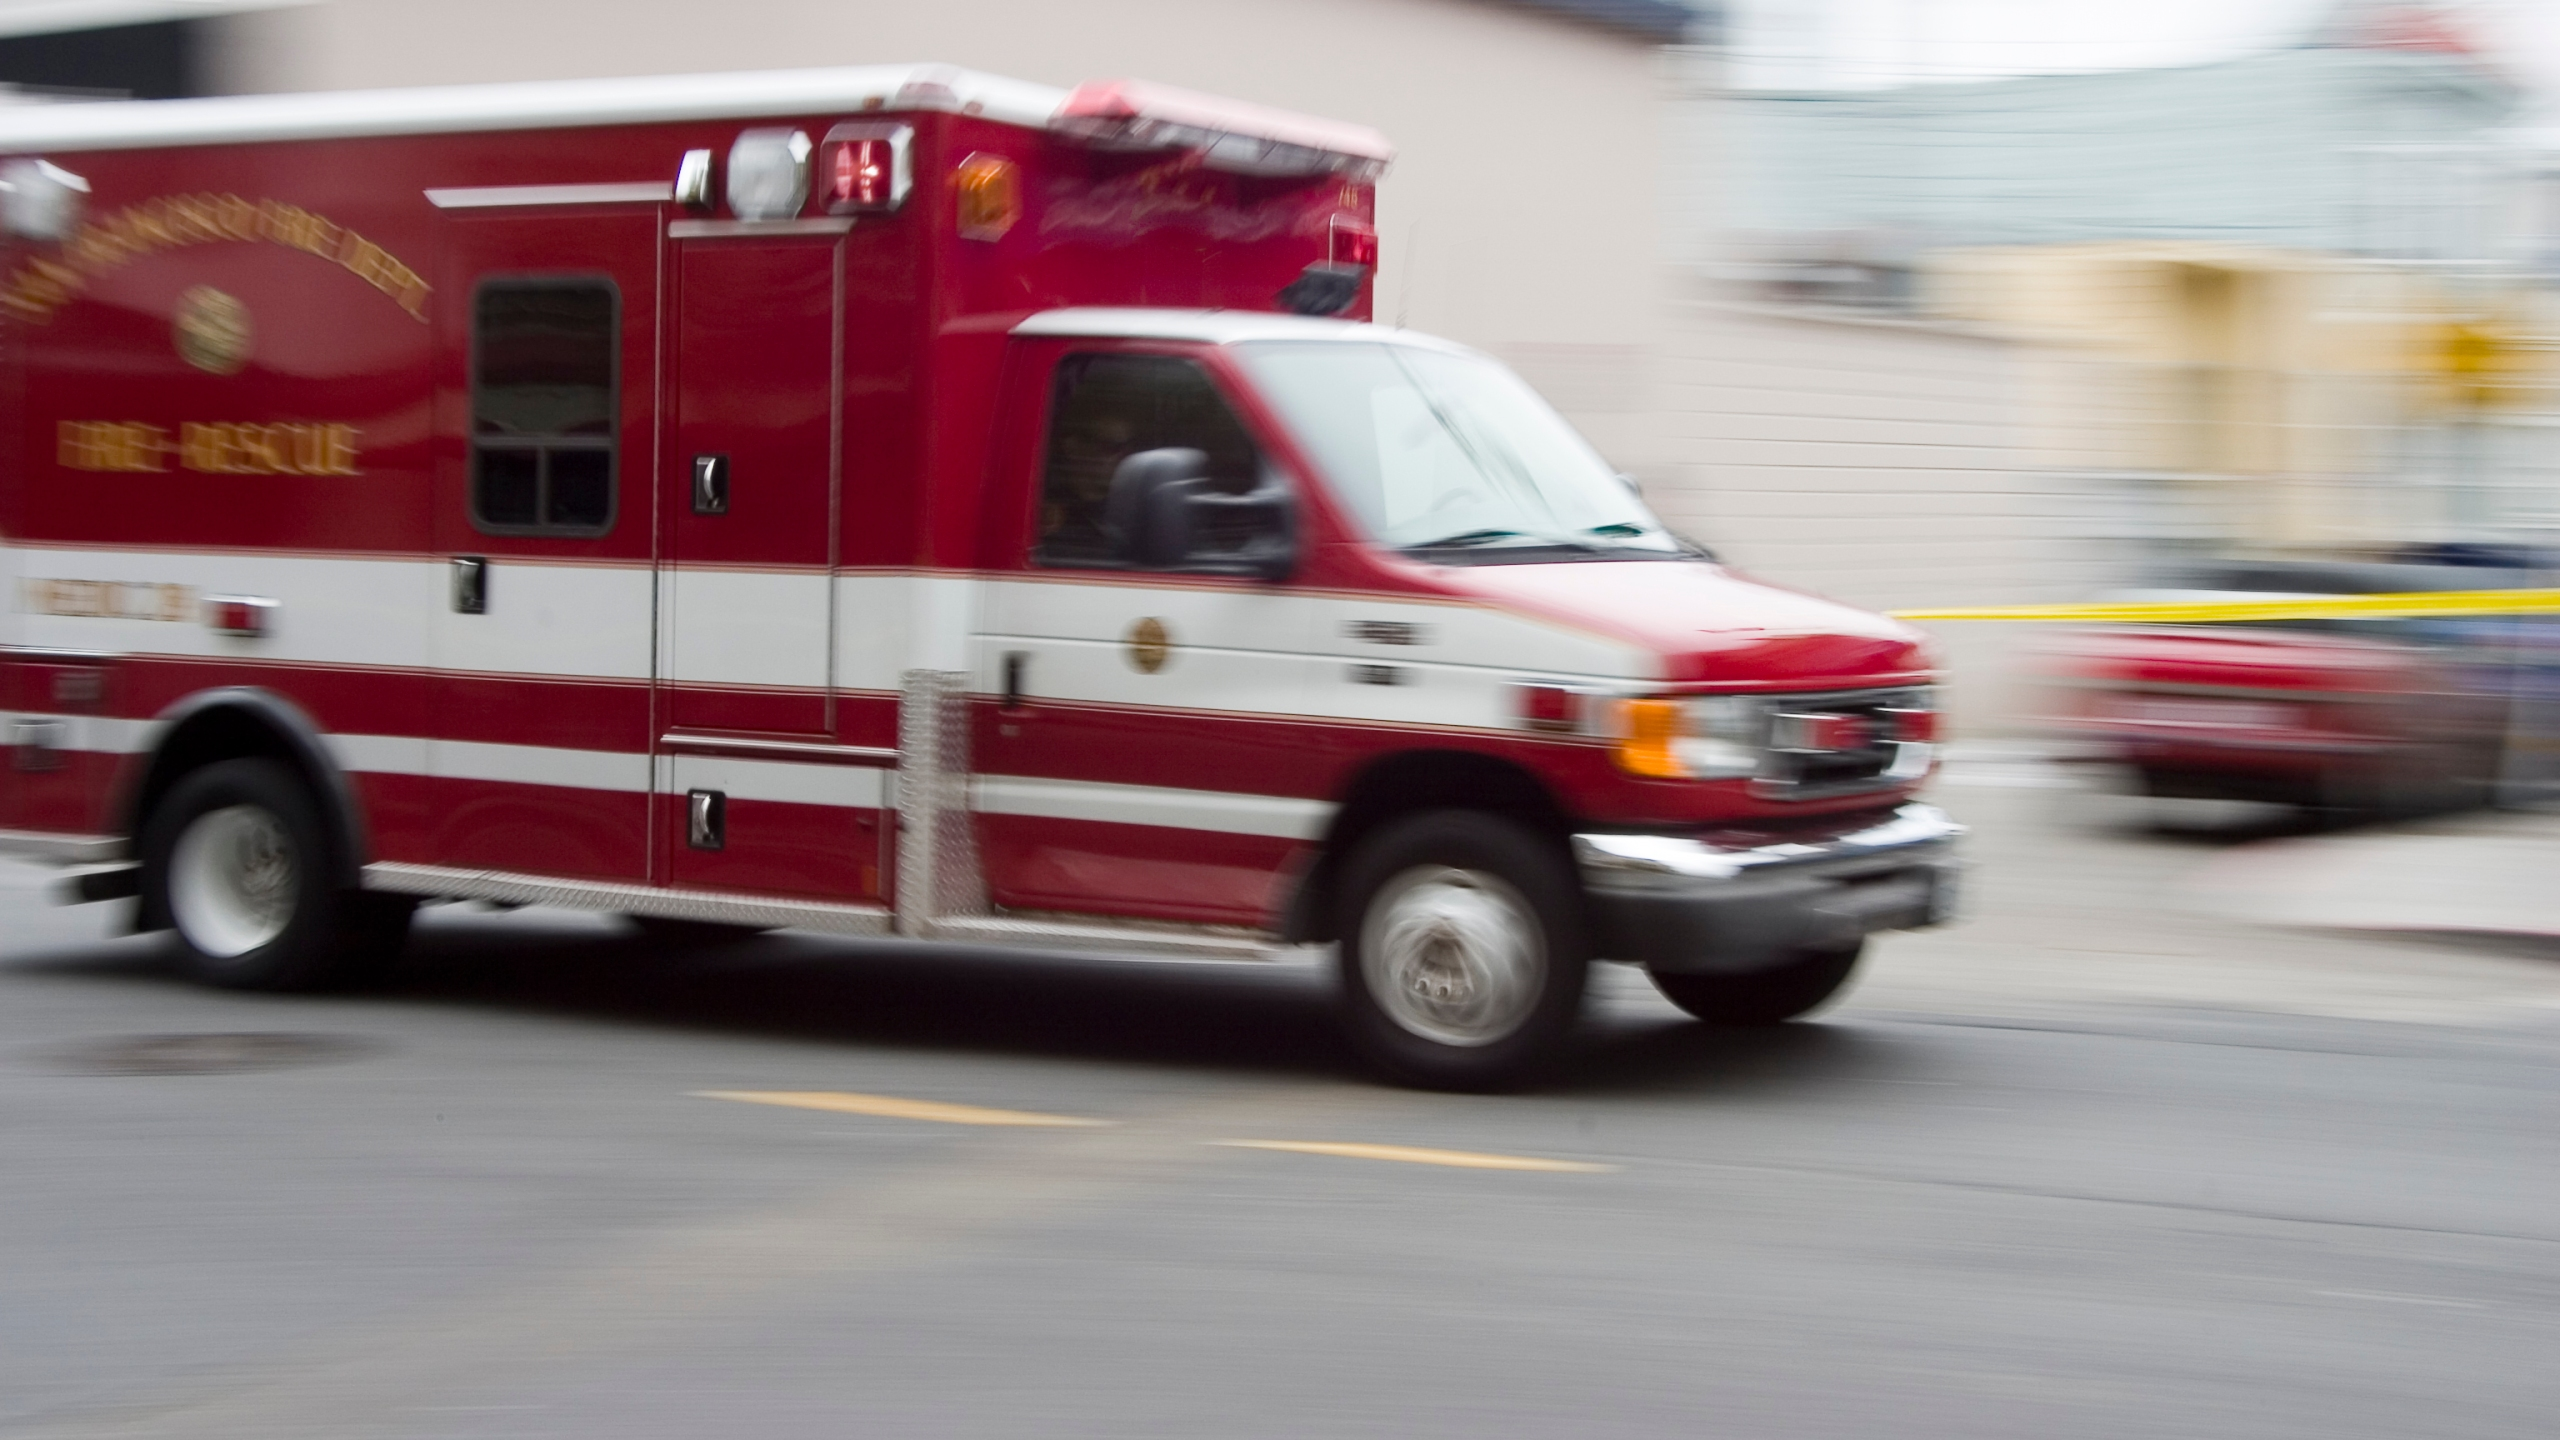 A file image shows a paramedic's ambulance. (Credit: iStock / Getty Images Plus)